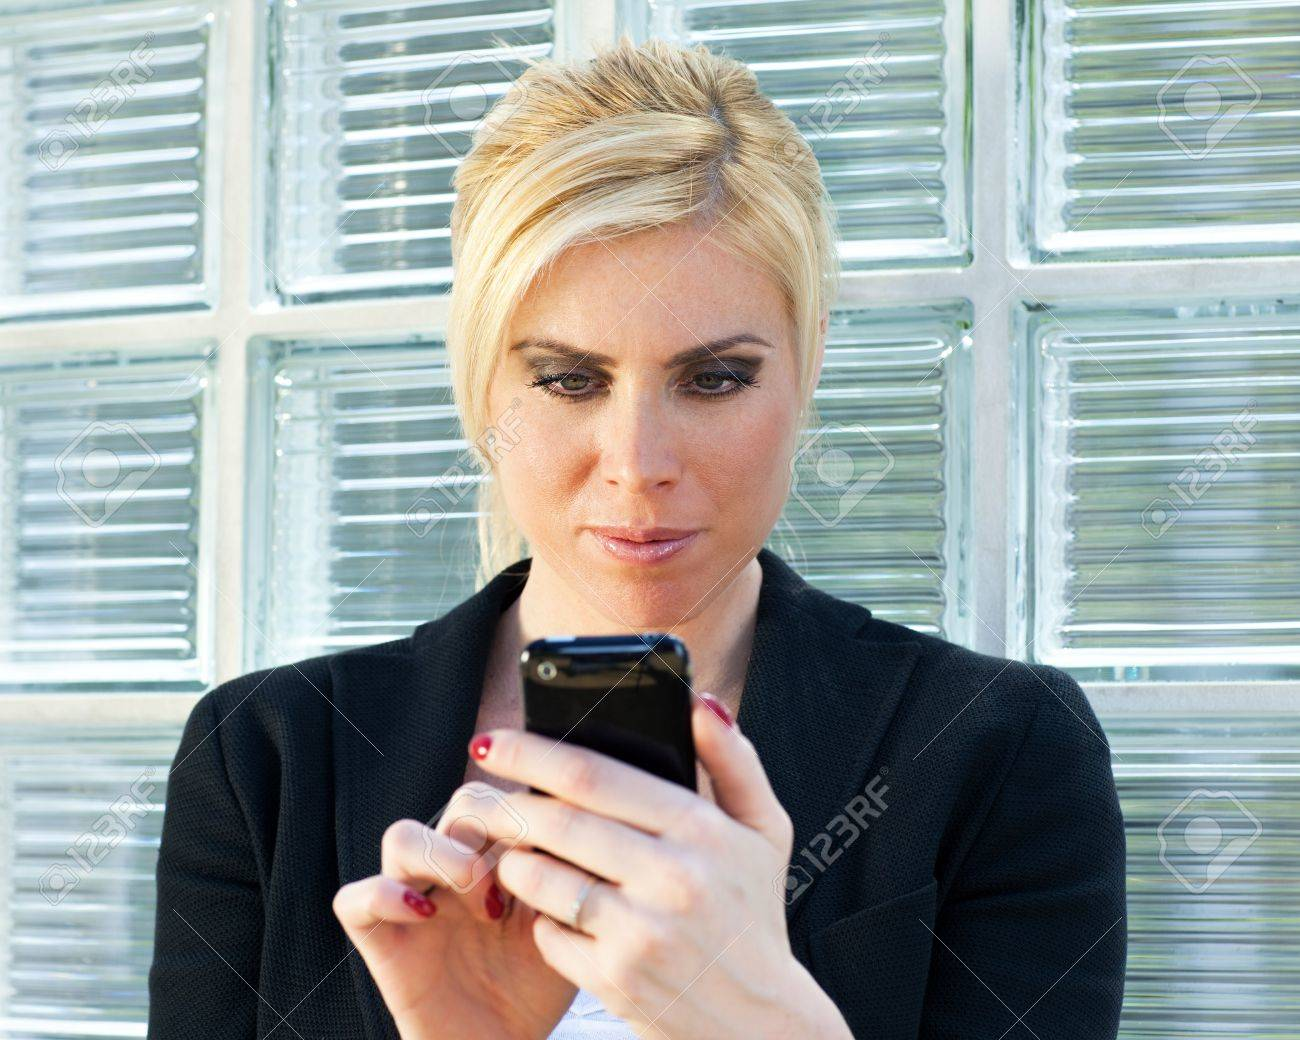 mid adult businesswoman reading phone message on smartphone. Stock Photo - 4852270